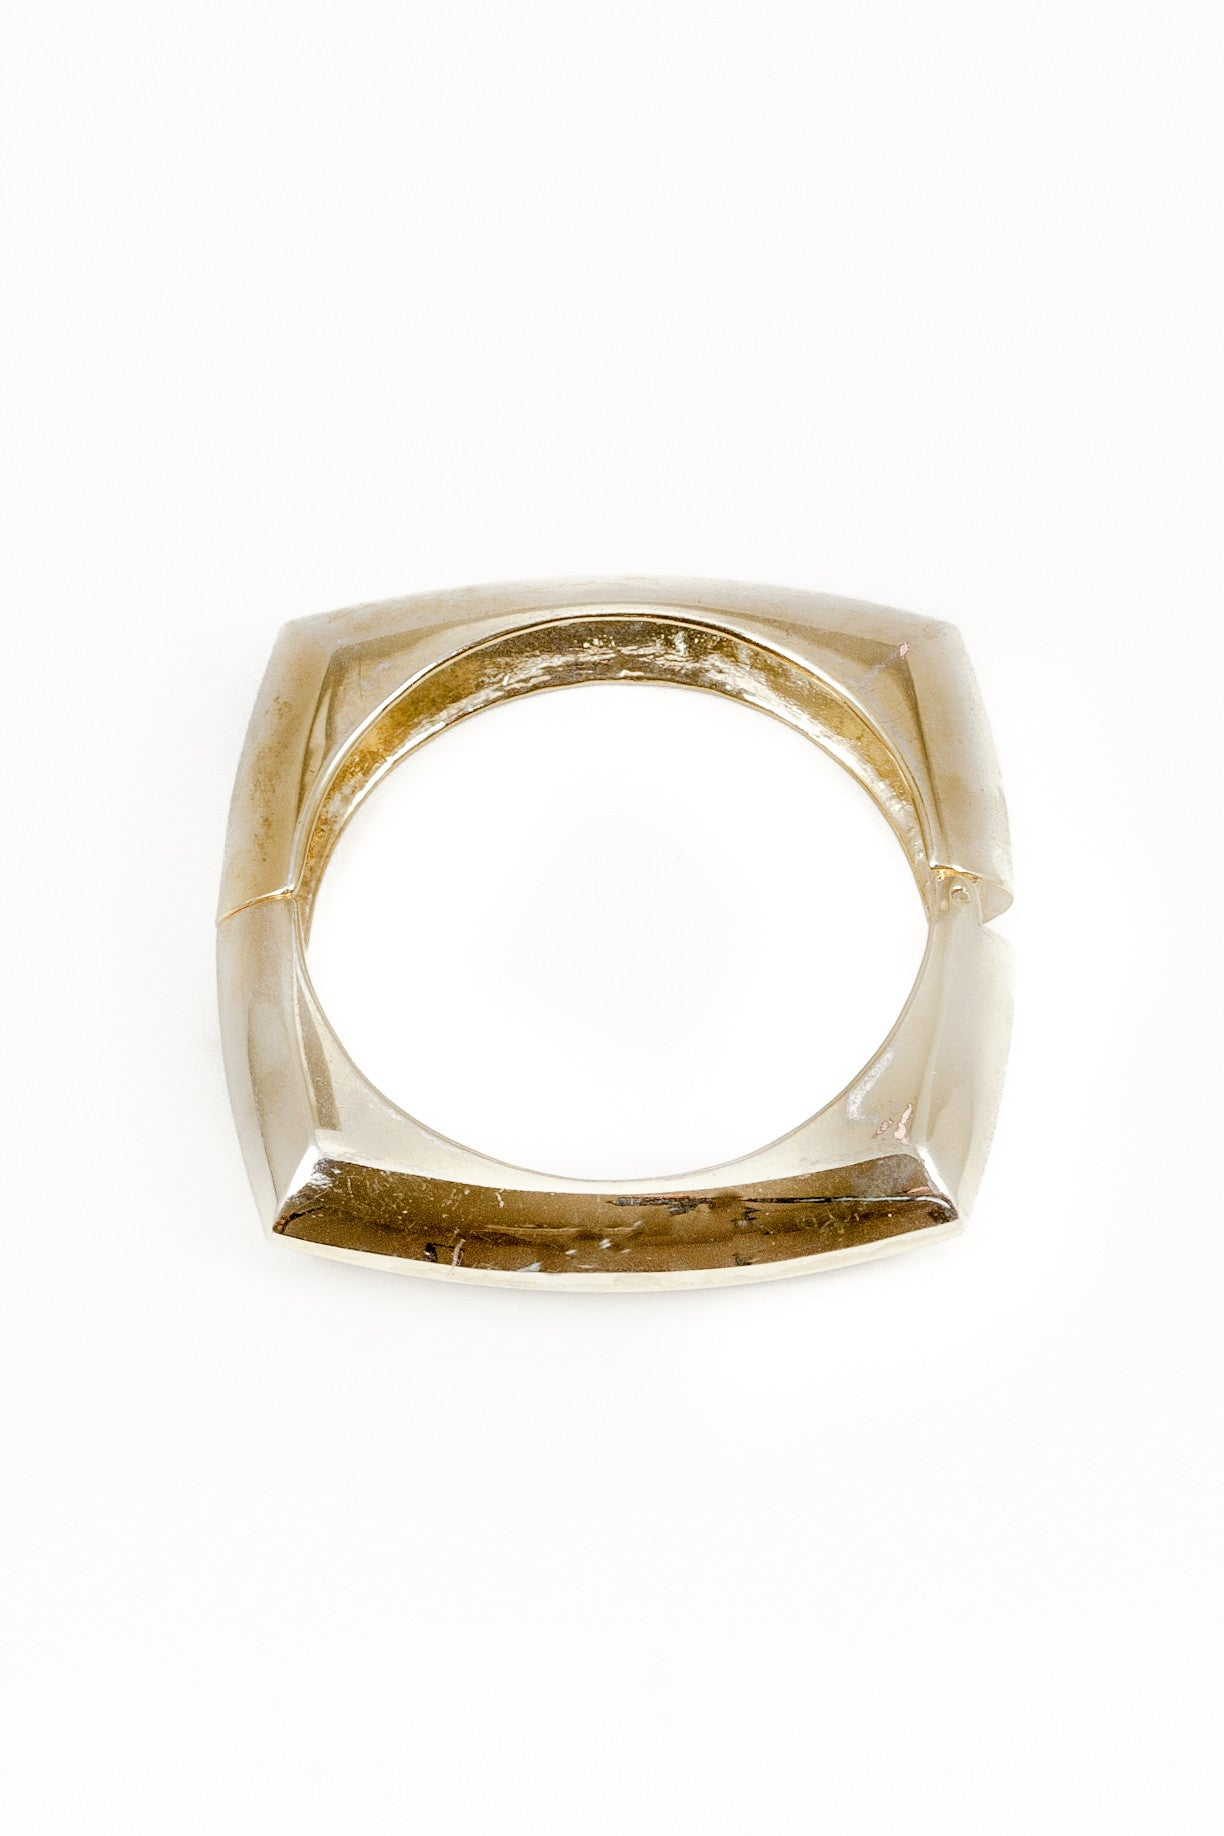 70's__Vintage__Chunky Flattened Square Cuff